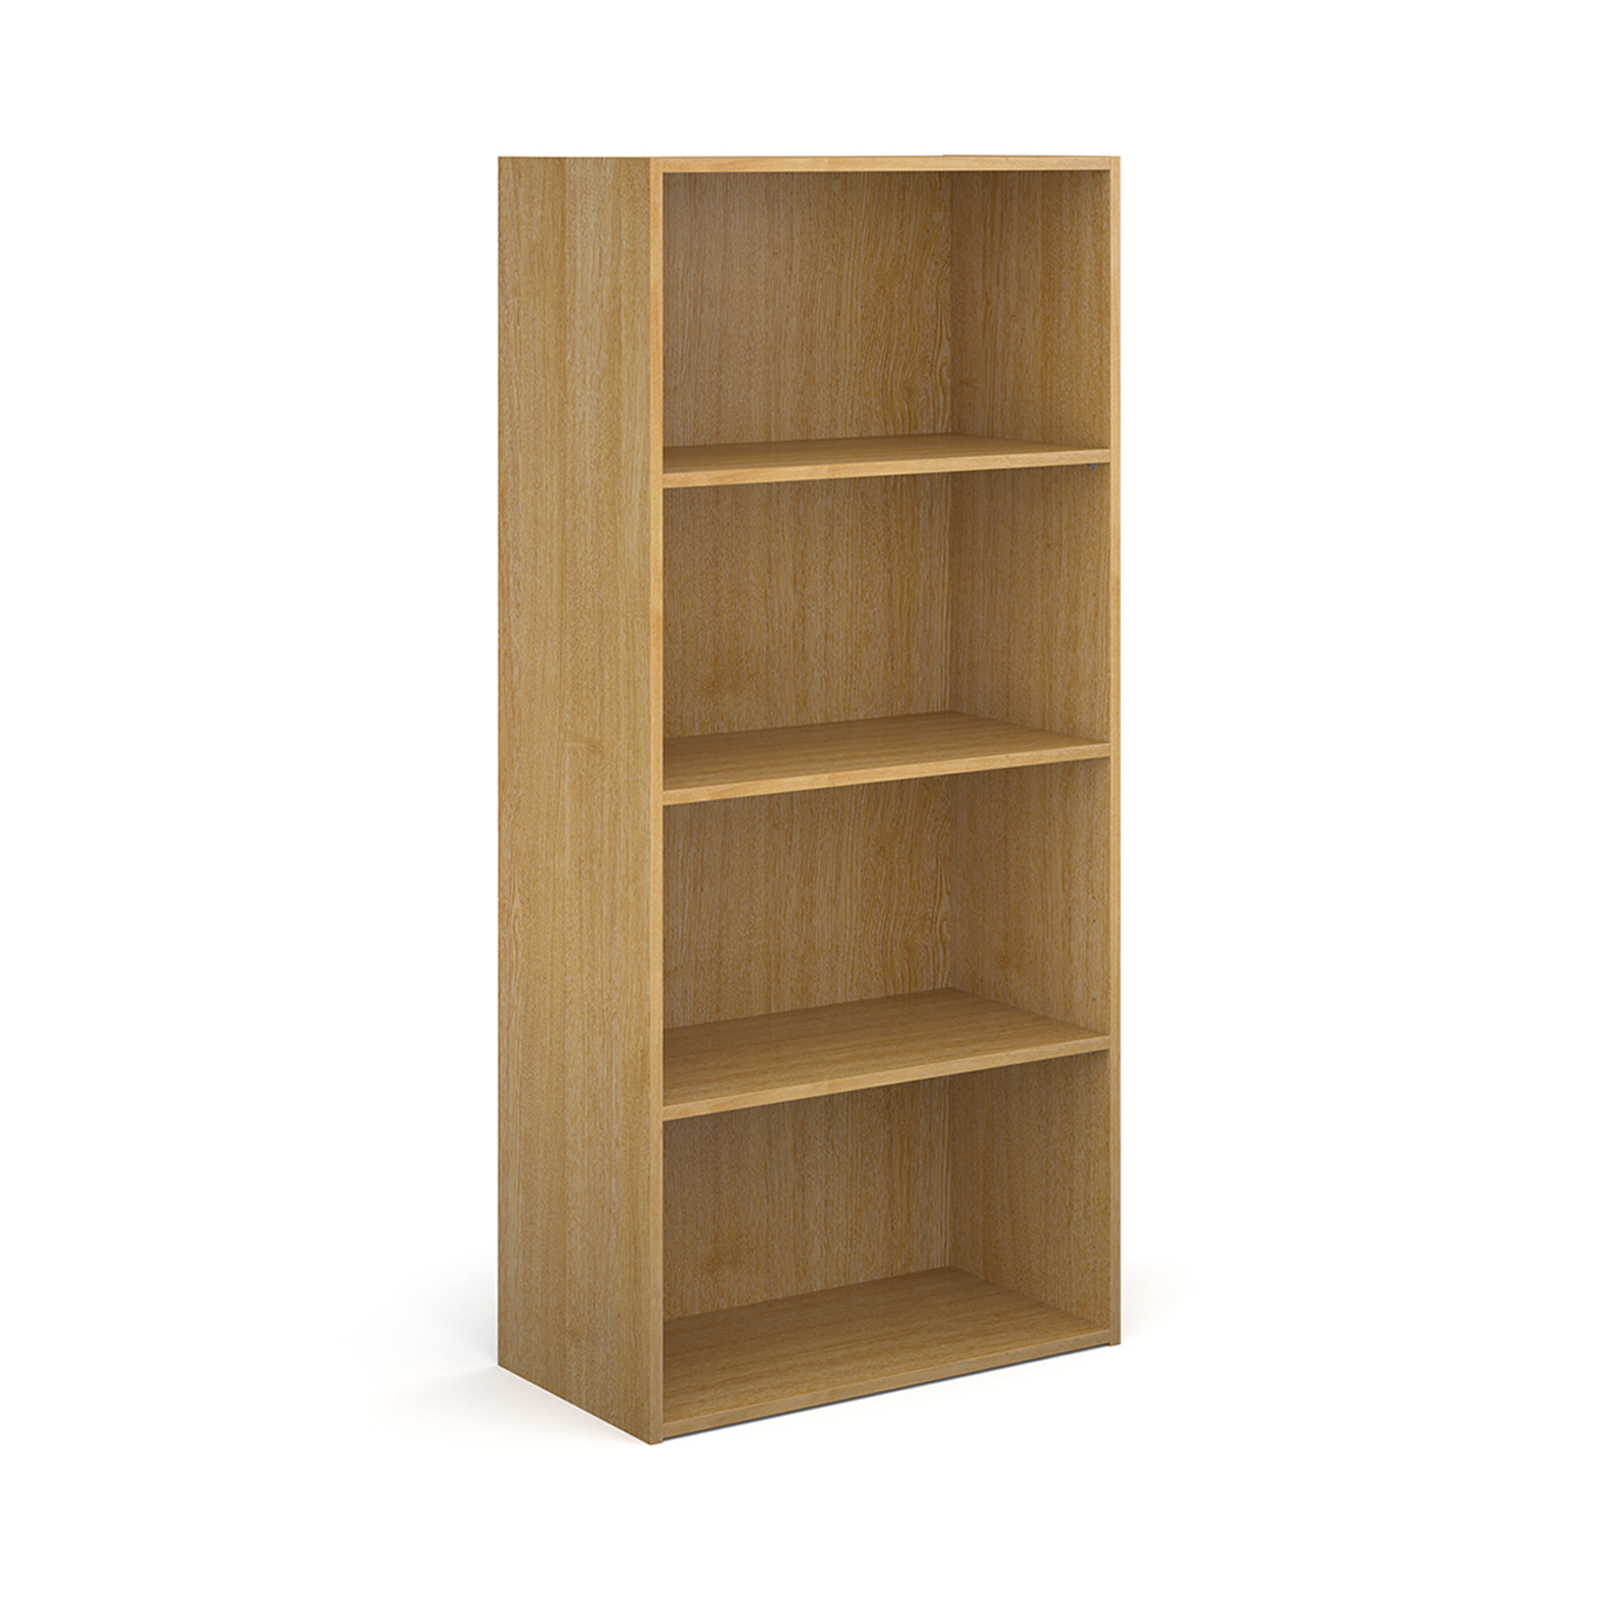 Over 1200mm High Contract bookcase 1630mm high with 3 shelves - oak